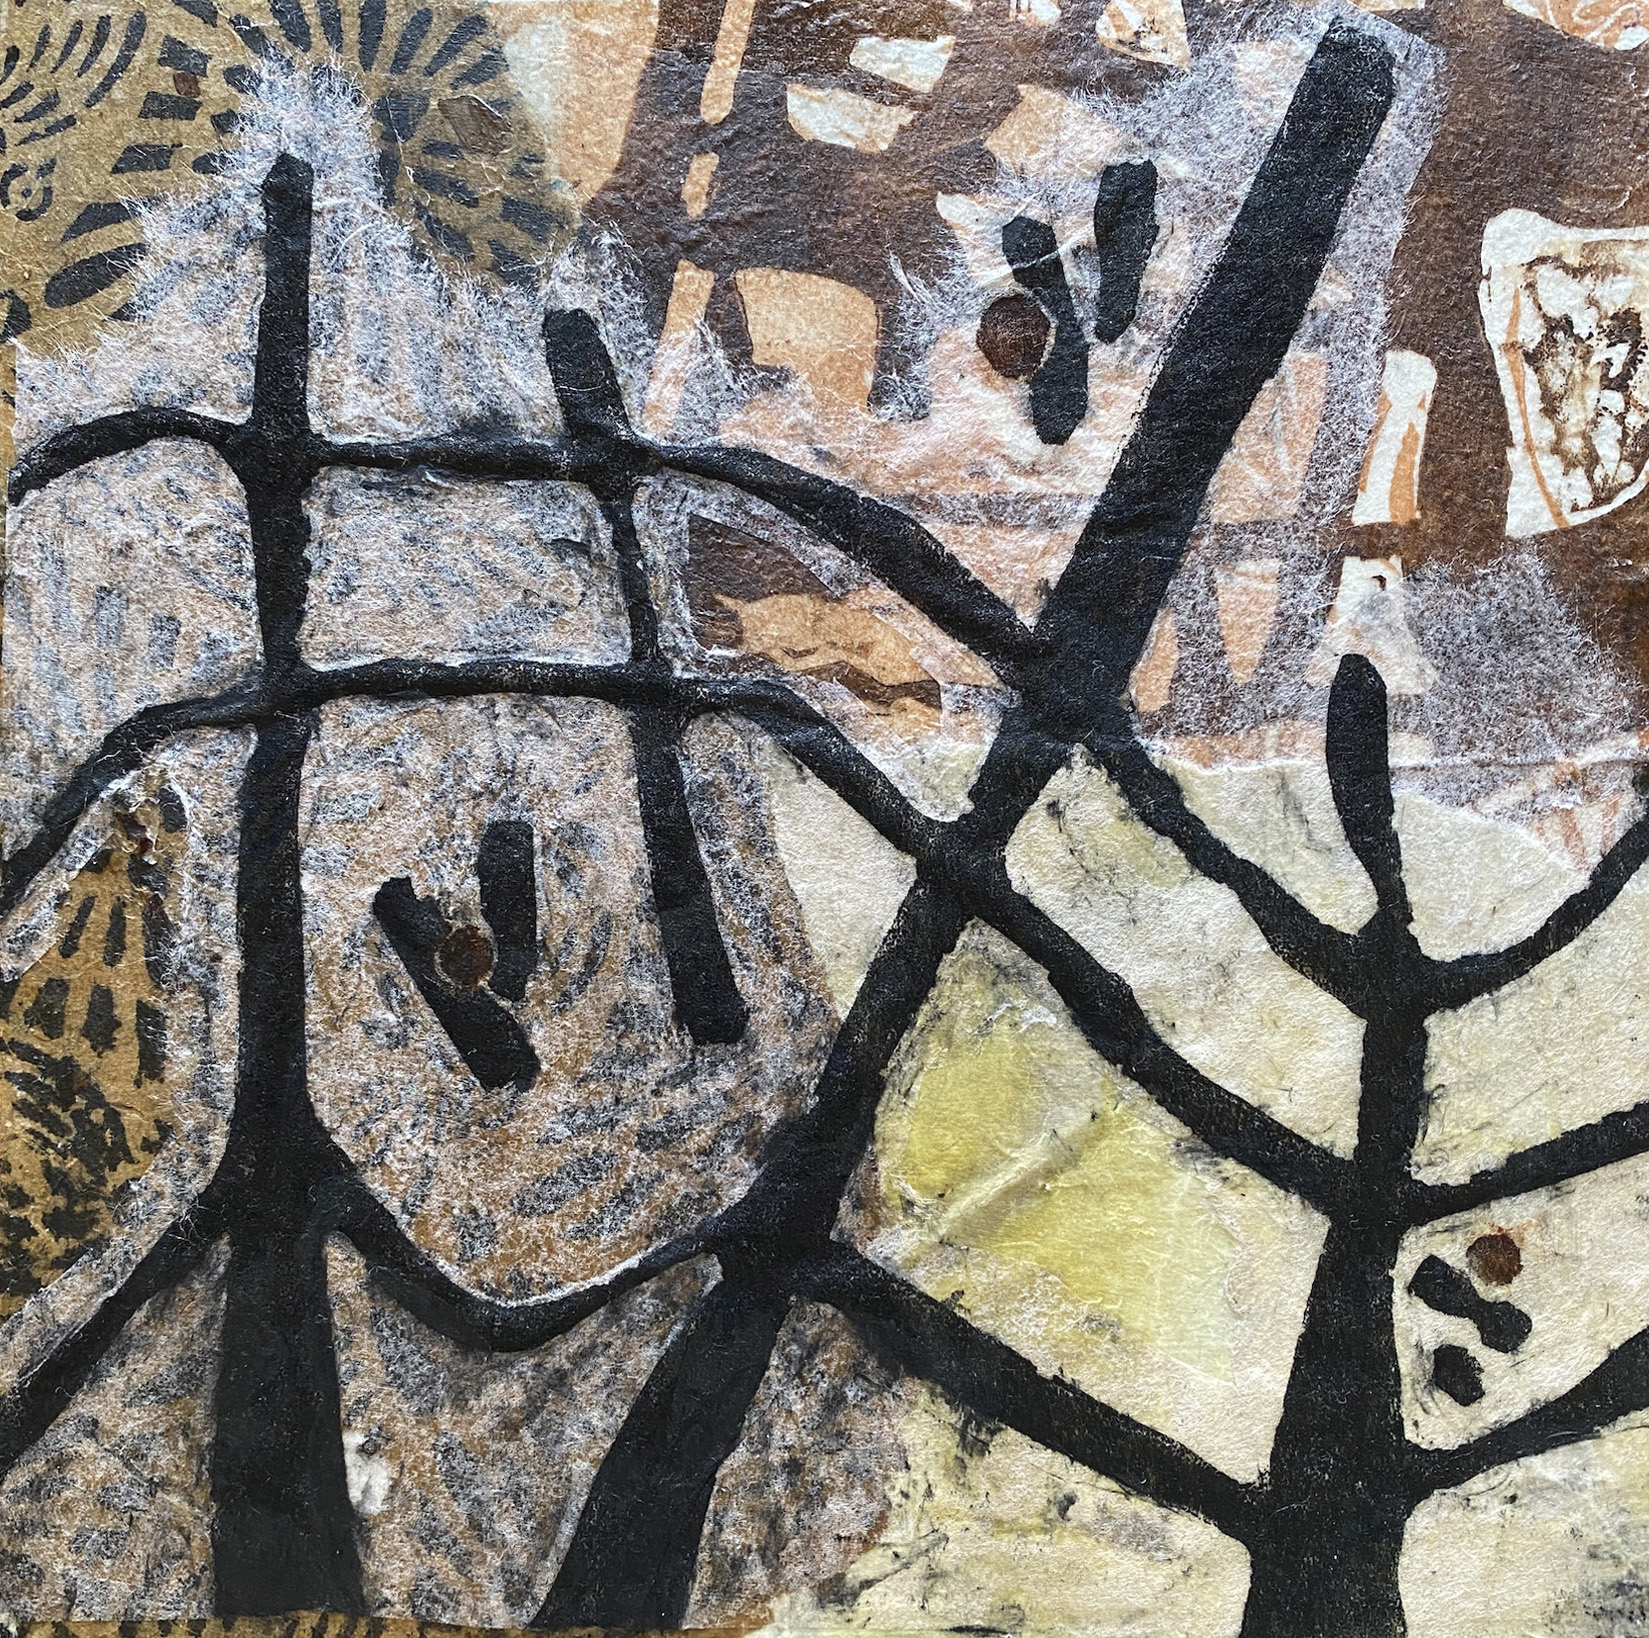 Janis O'Driscoll, Which Way Which Way, Relief and eco prints collage with wax on wood panel, 8 x 8 in, 2021